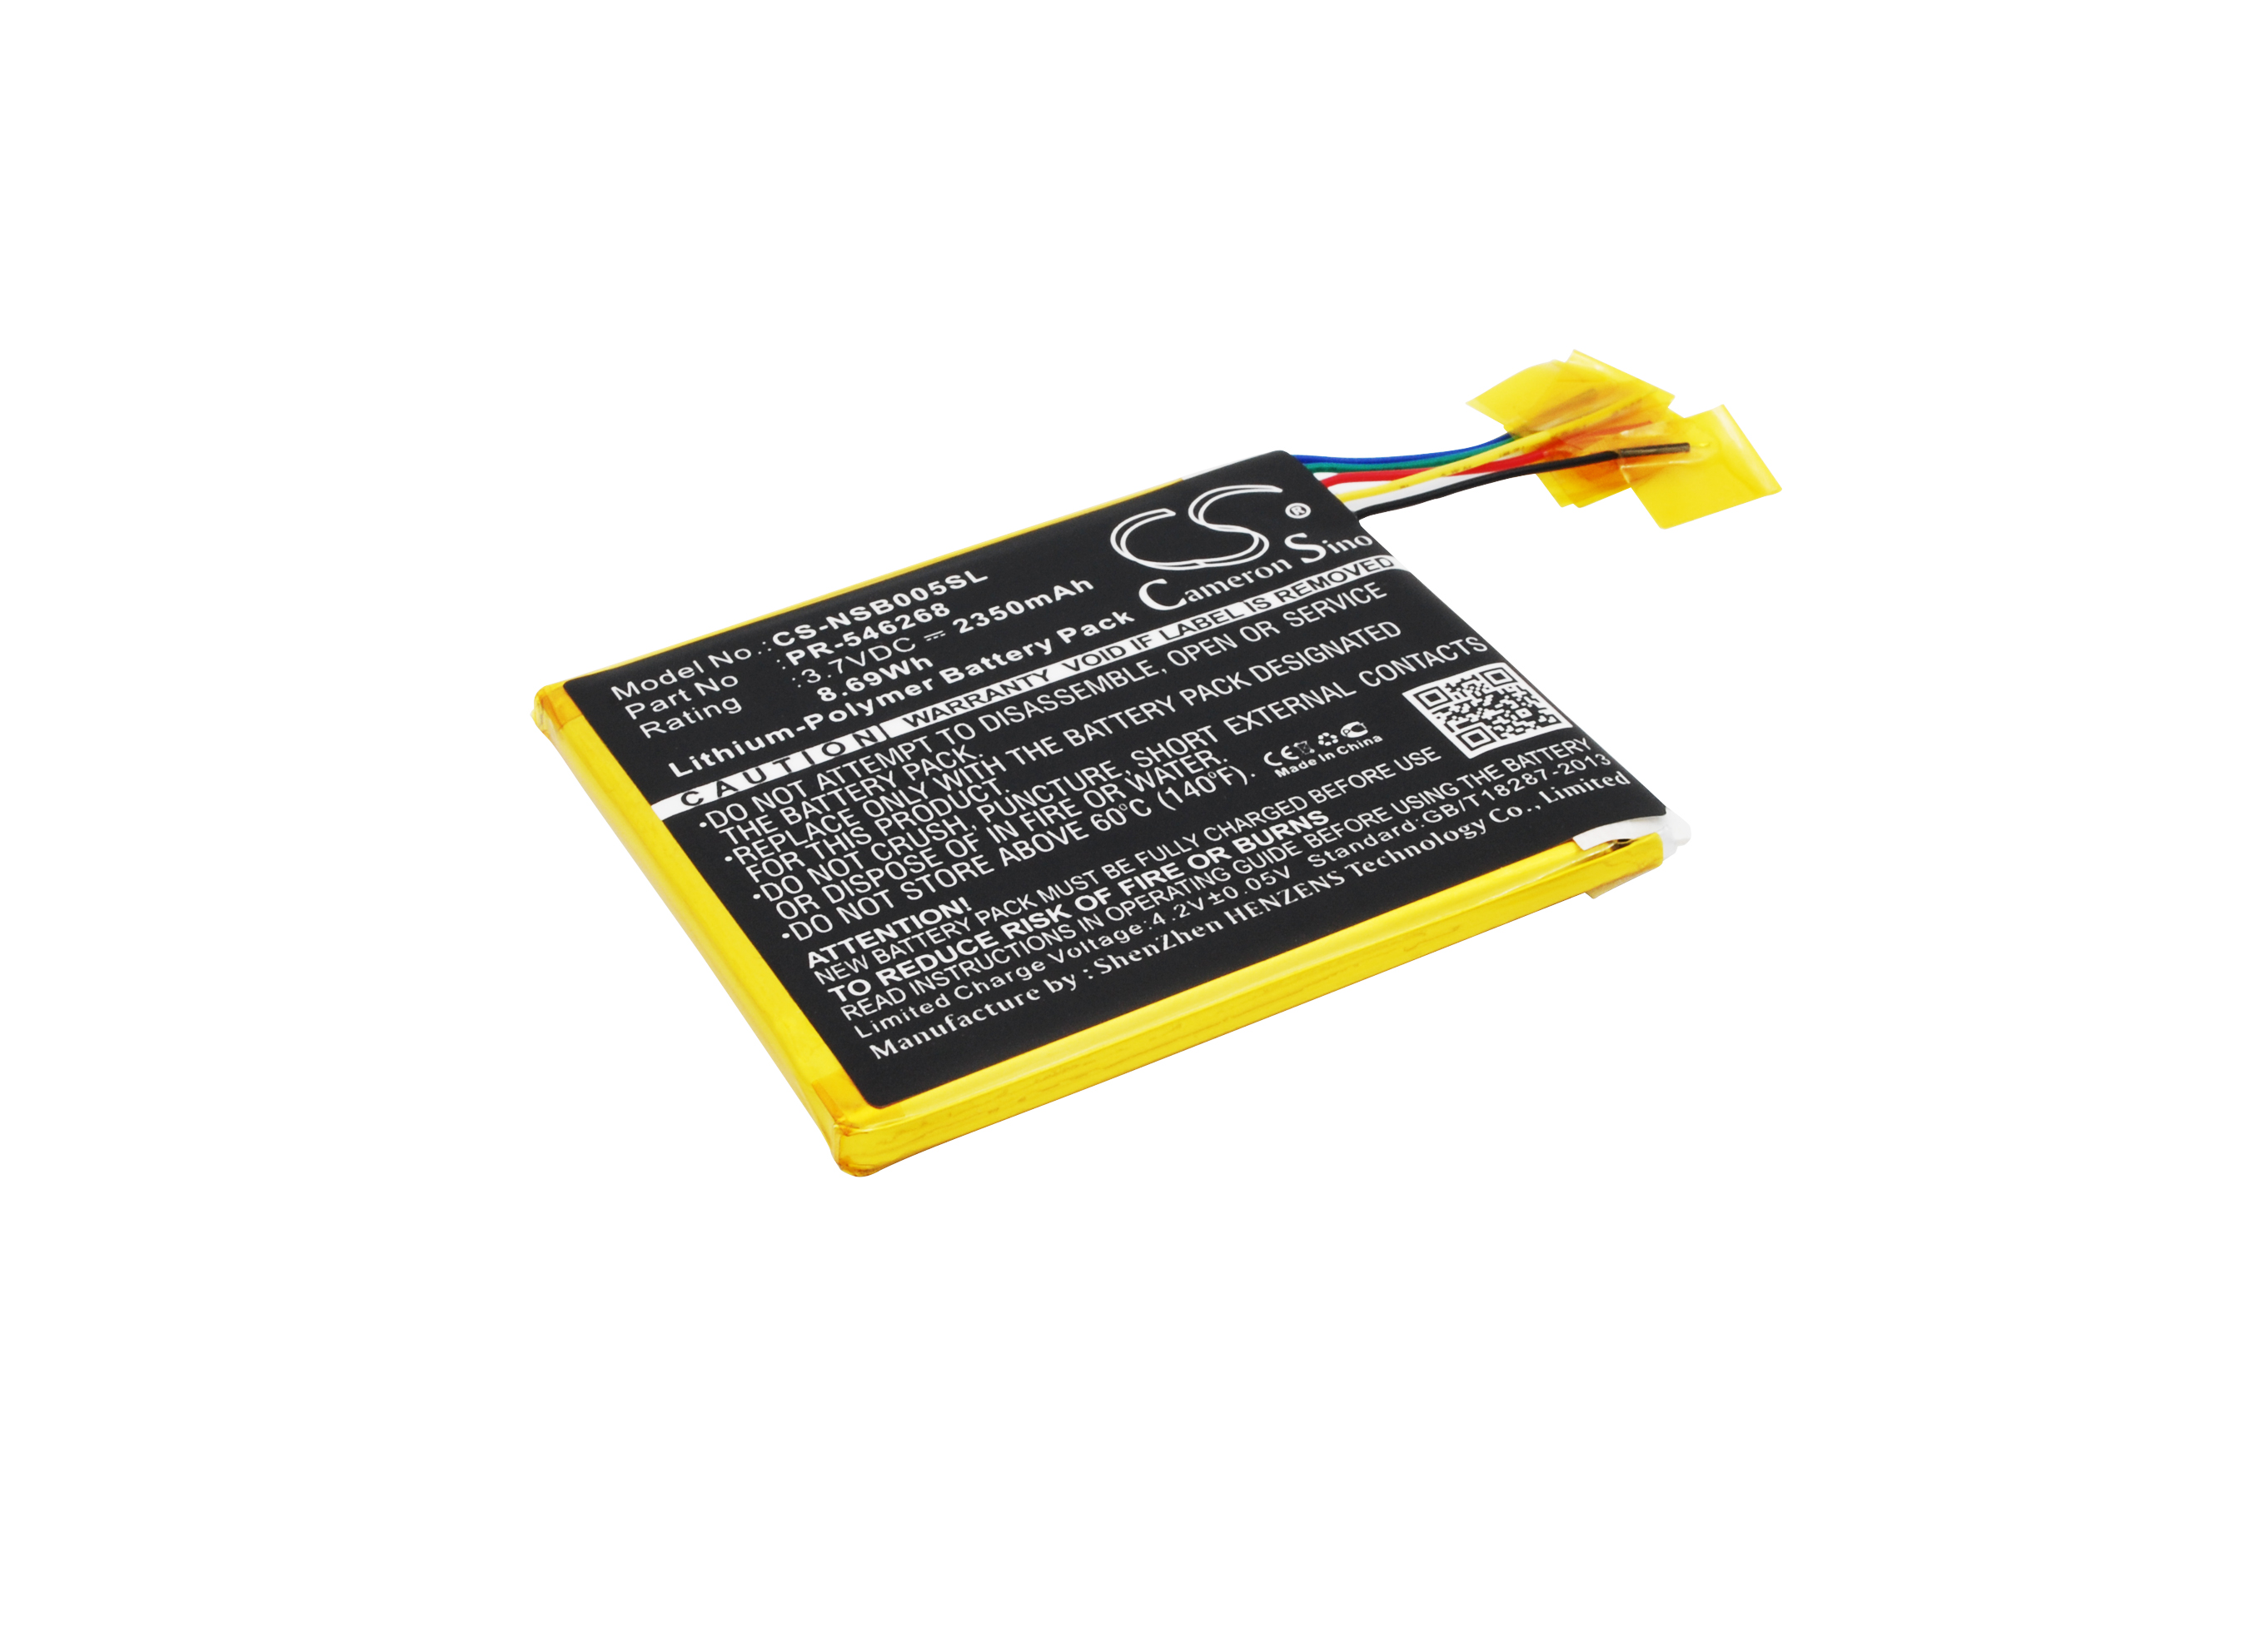 2350mah Battery For Fuhu Nabi Jr Nv5a Nabijr Nv5a Ebay